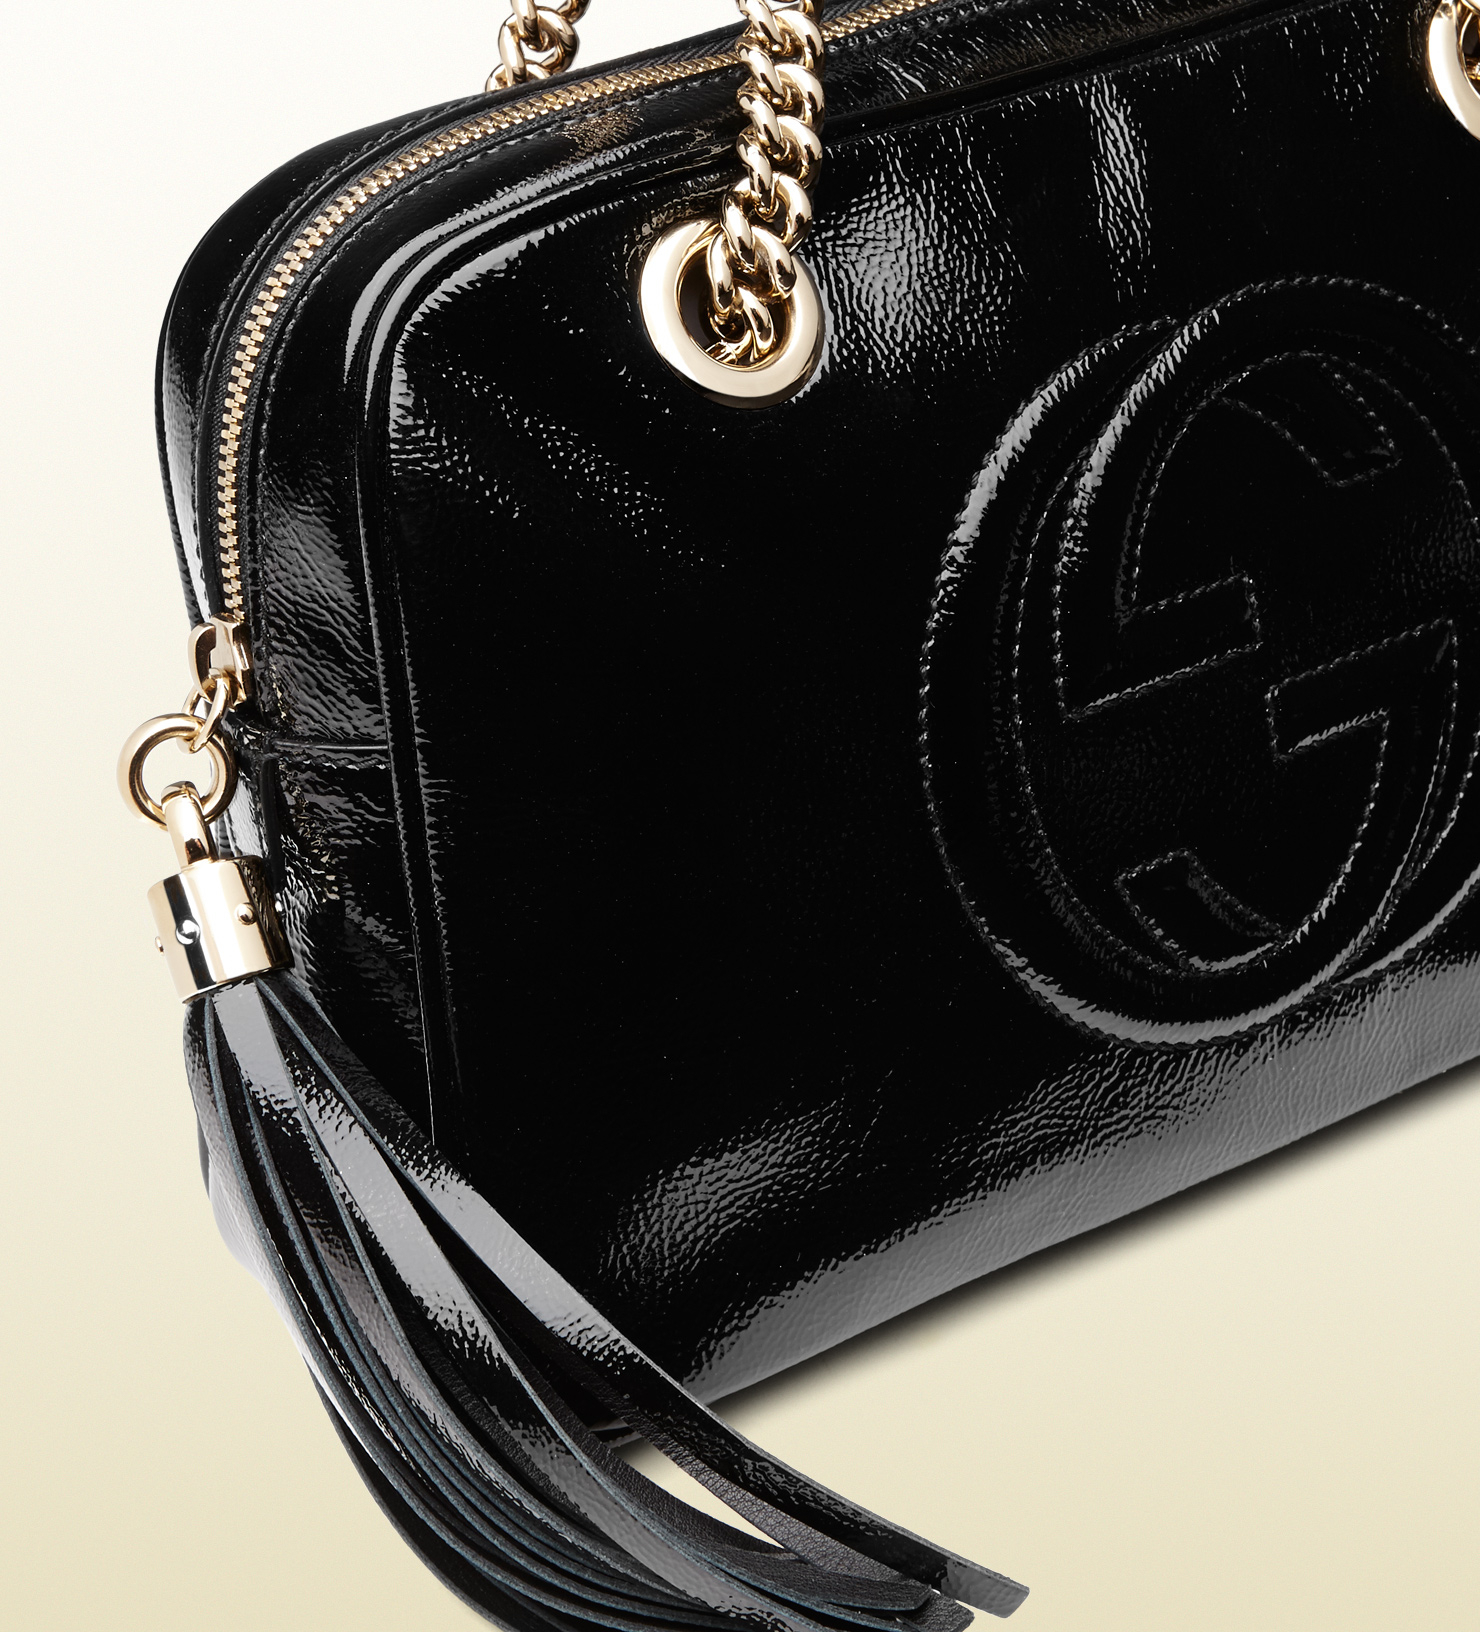 Lyst - Gucci Soho Soft Patent Leather Chain Shoulder Bag in Black 3cd21e9153b14